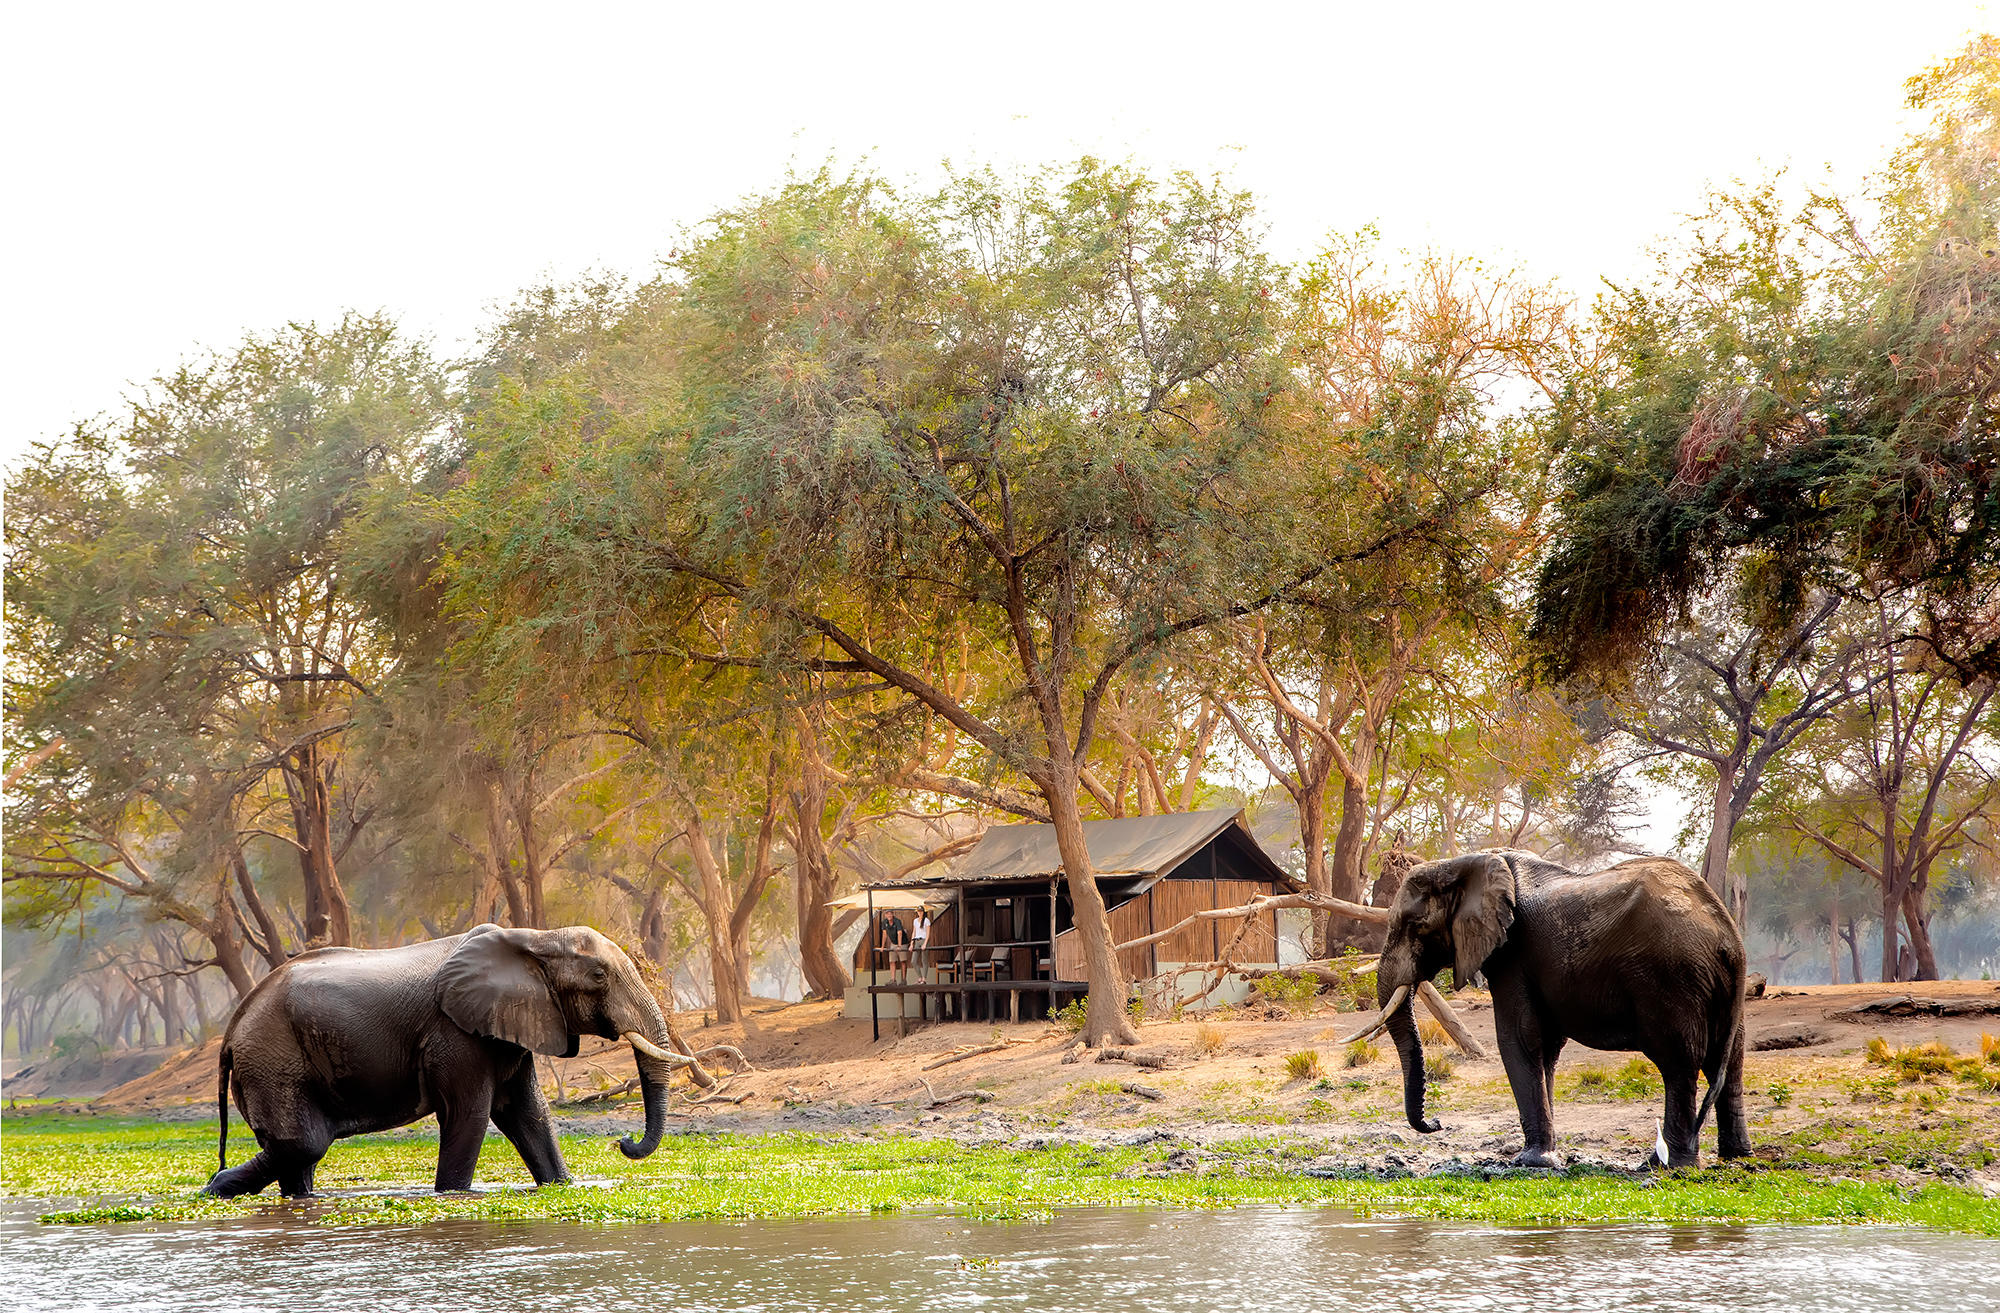 Elephants near tents at Old Mondoro